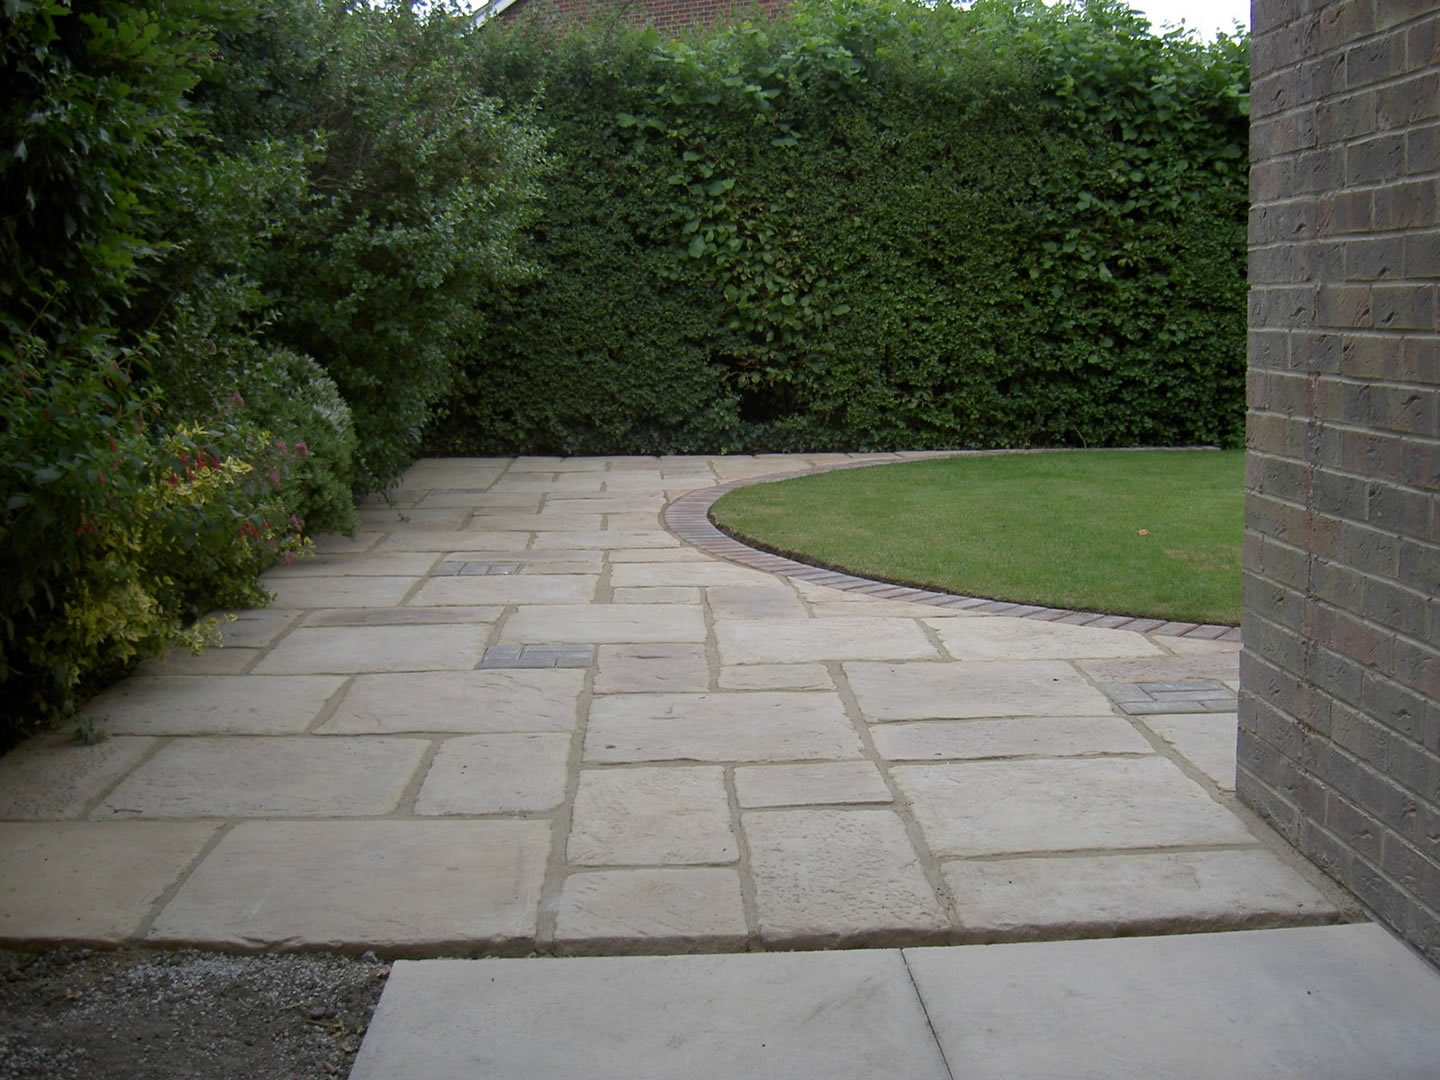 Garden Patio & Paving - 4L01